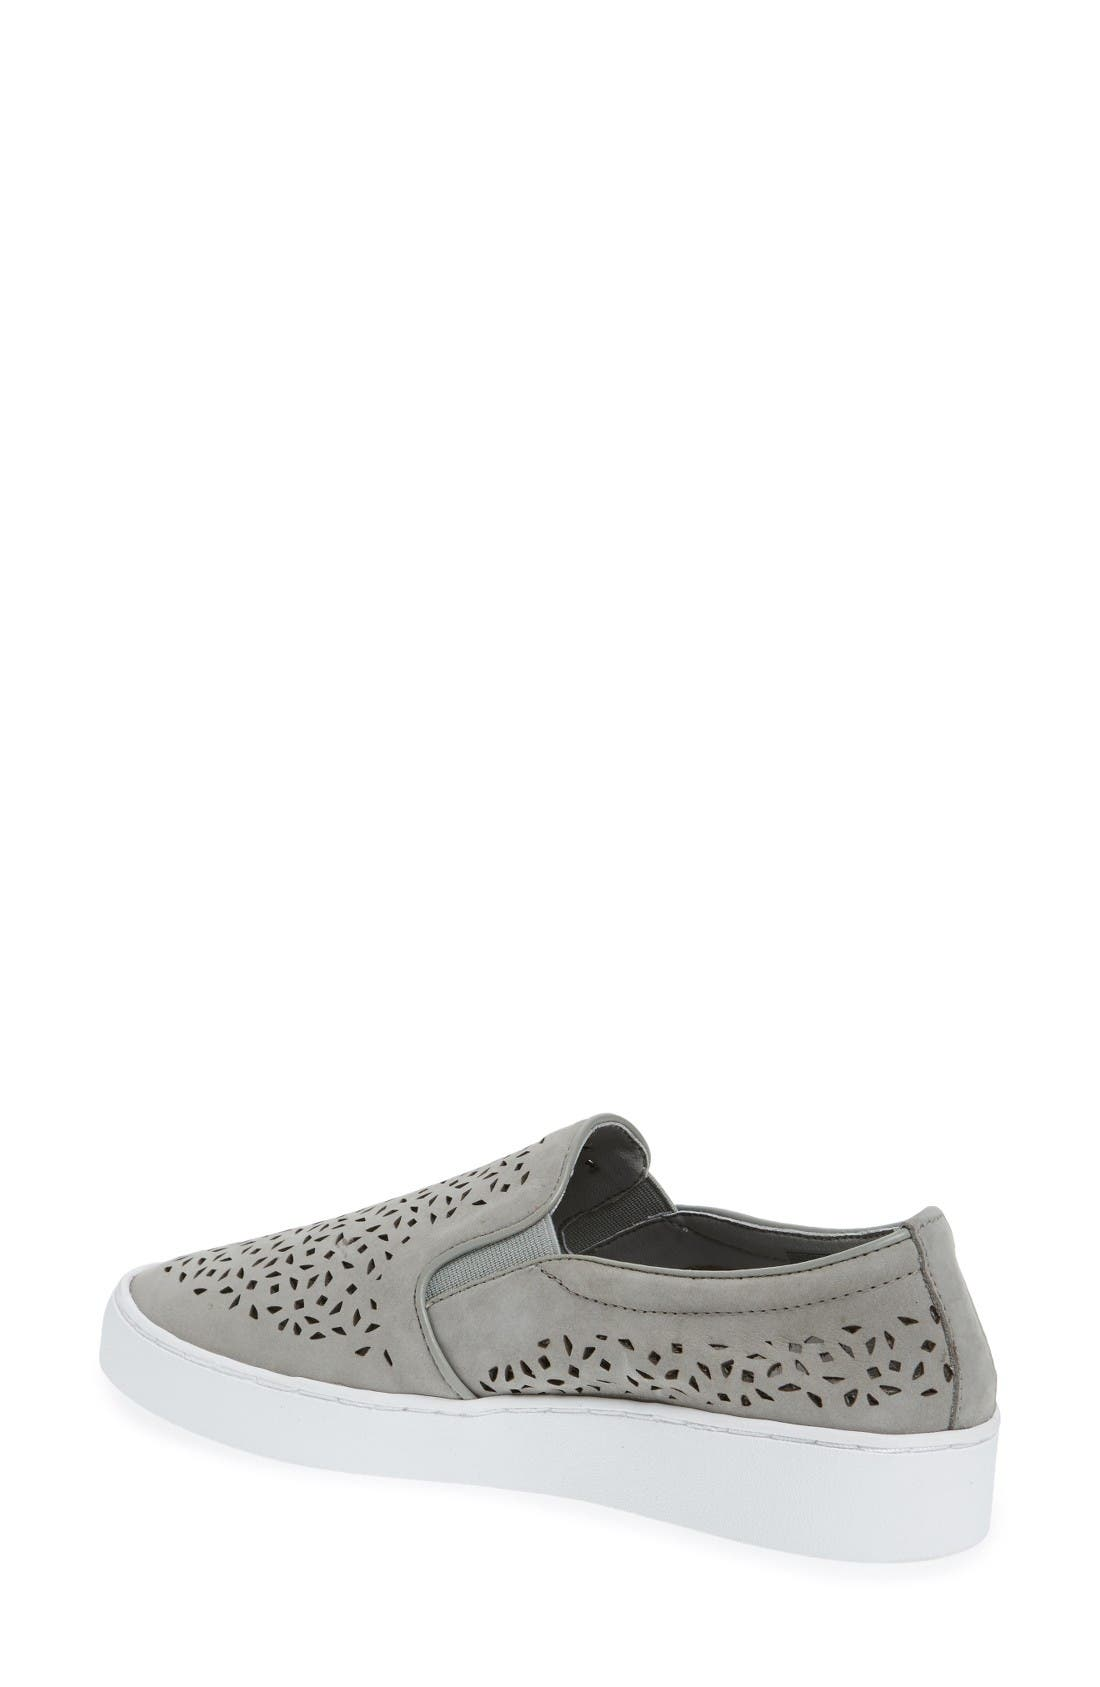 Alternate Image 2  - Vionic Perforated Slip-On Sneaker (Women)